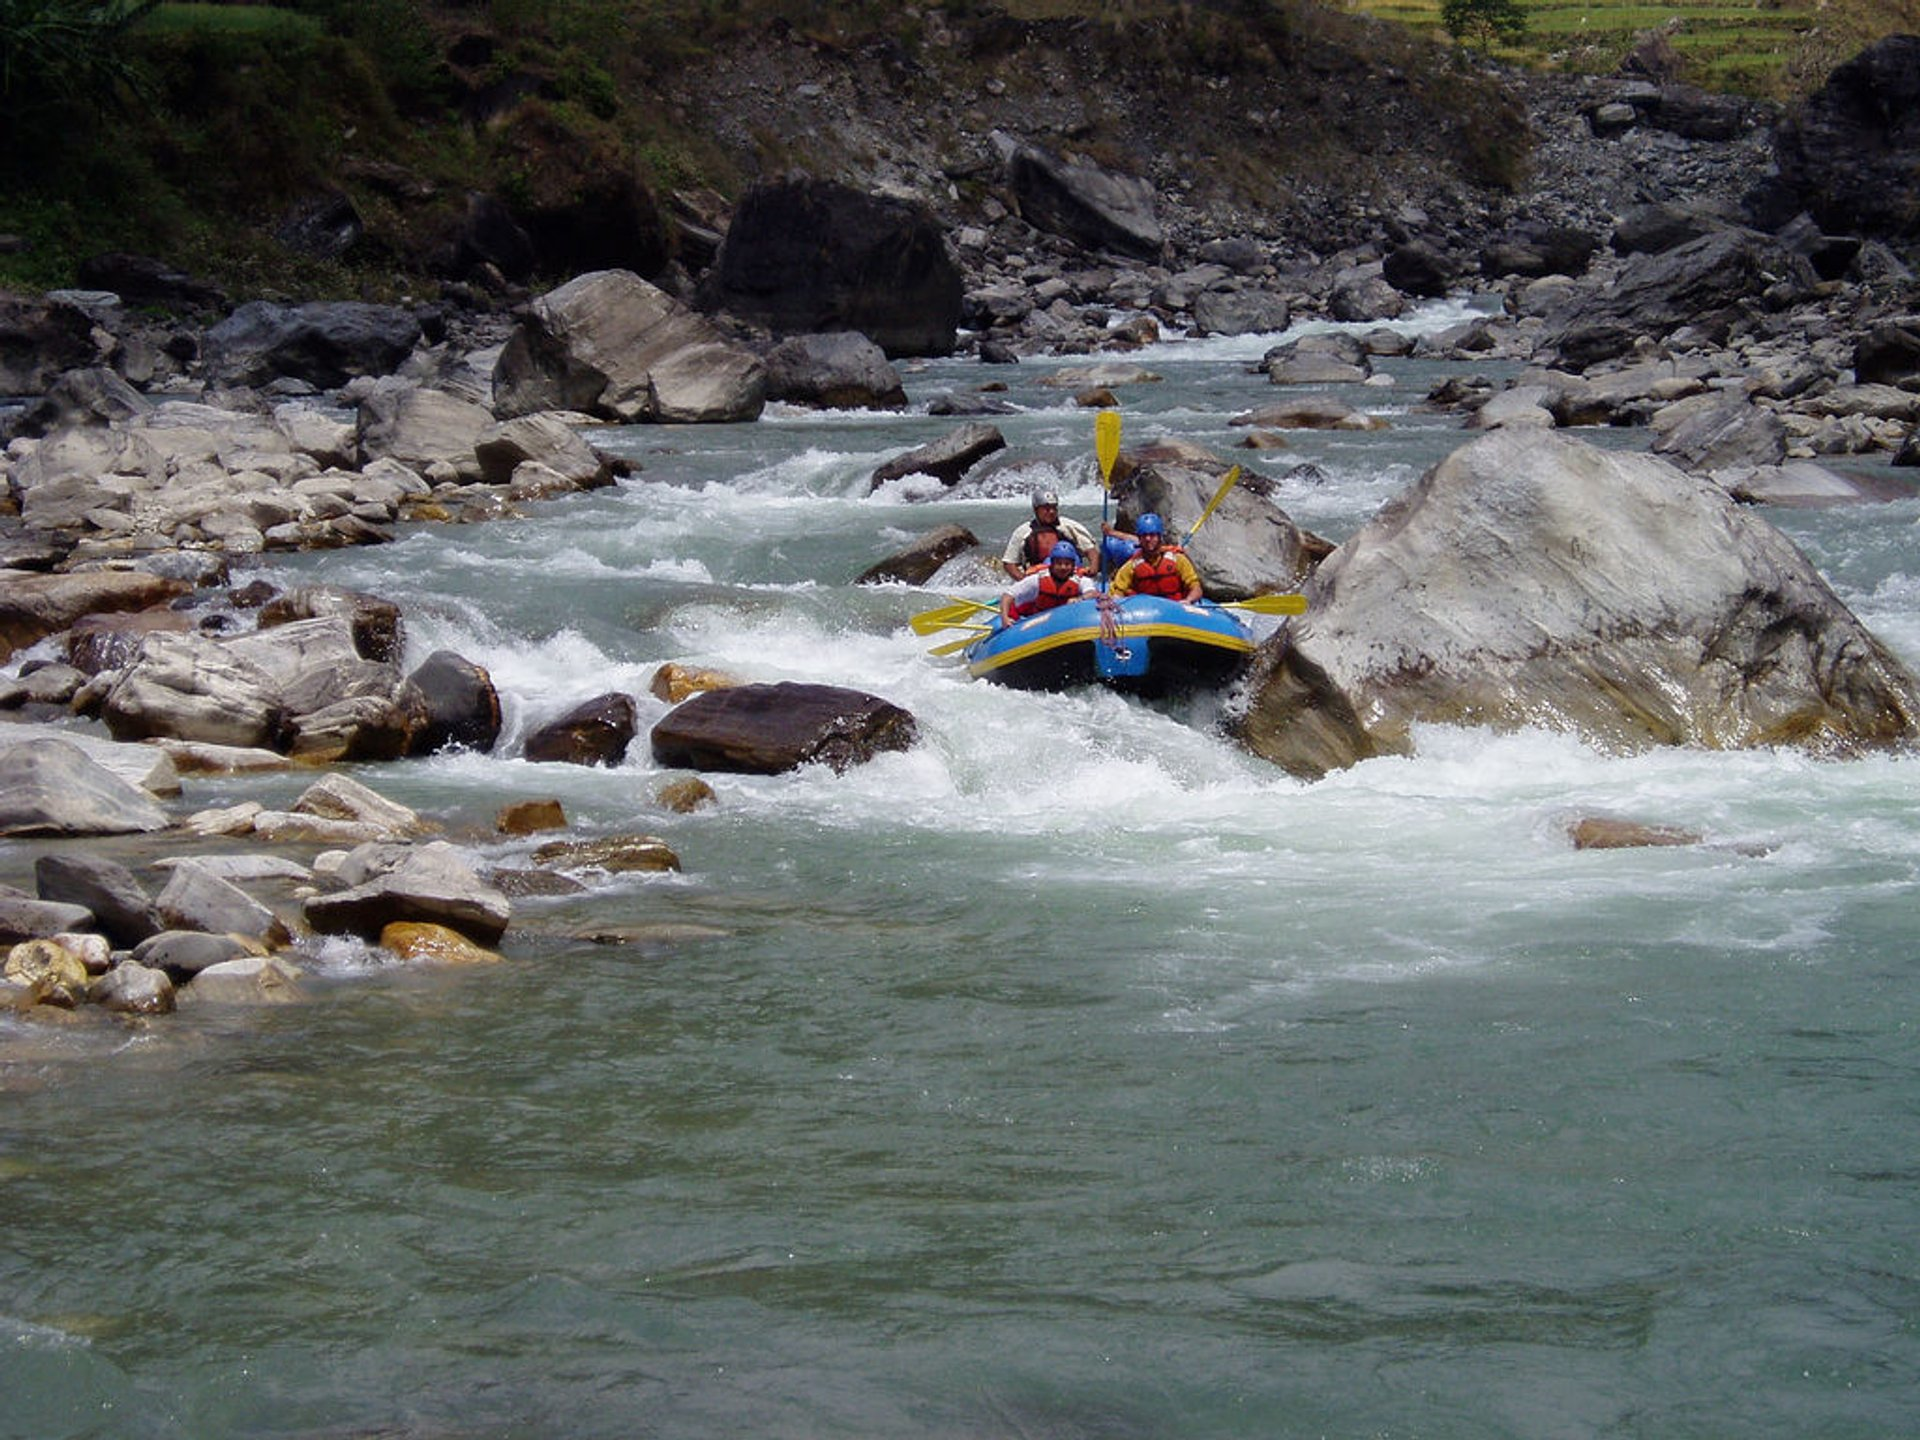 White Water Rafting and Kayaking Season in Nepal - Best Season 2020